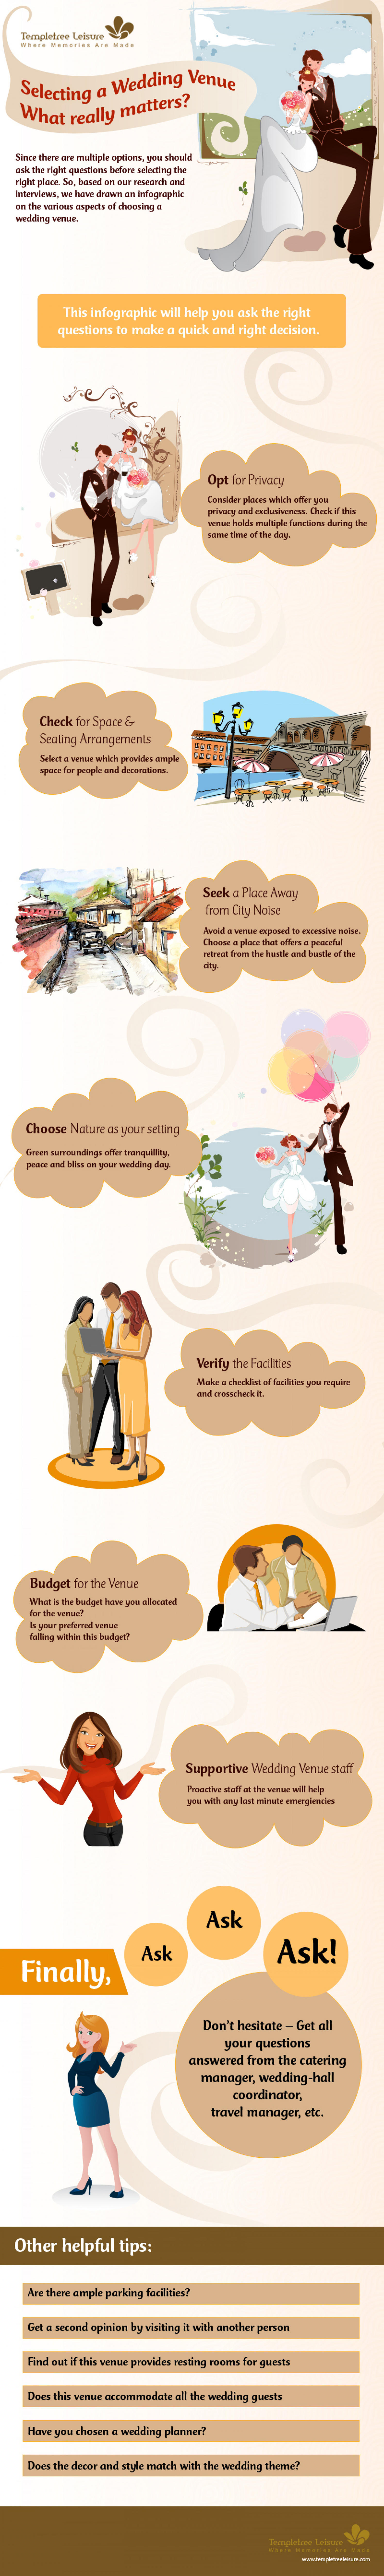 Selecting a Wedding Venue What Really Matters? Infographic